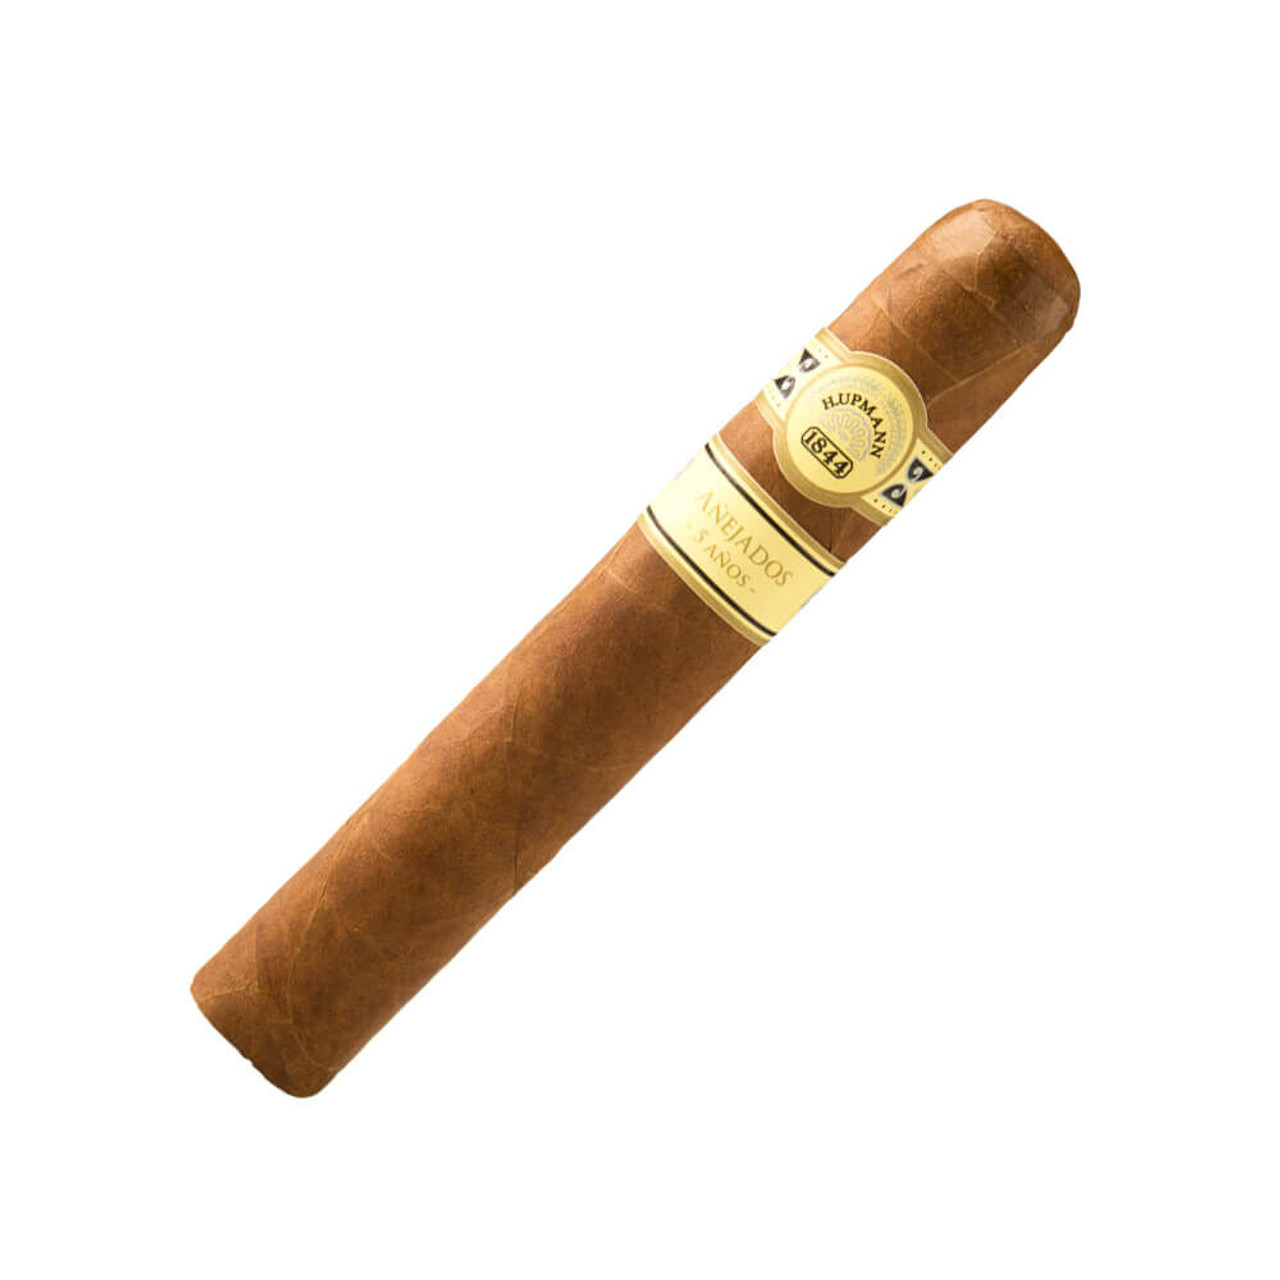 H. Upmann Anejados Magnum Cigars - 6 x 60 (Box of 10)